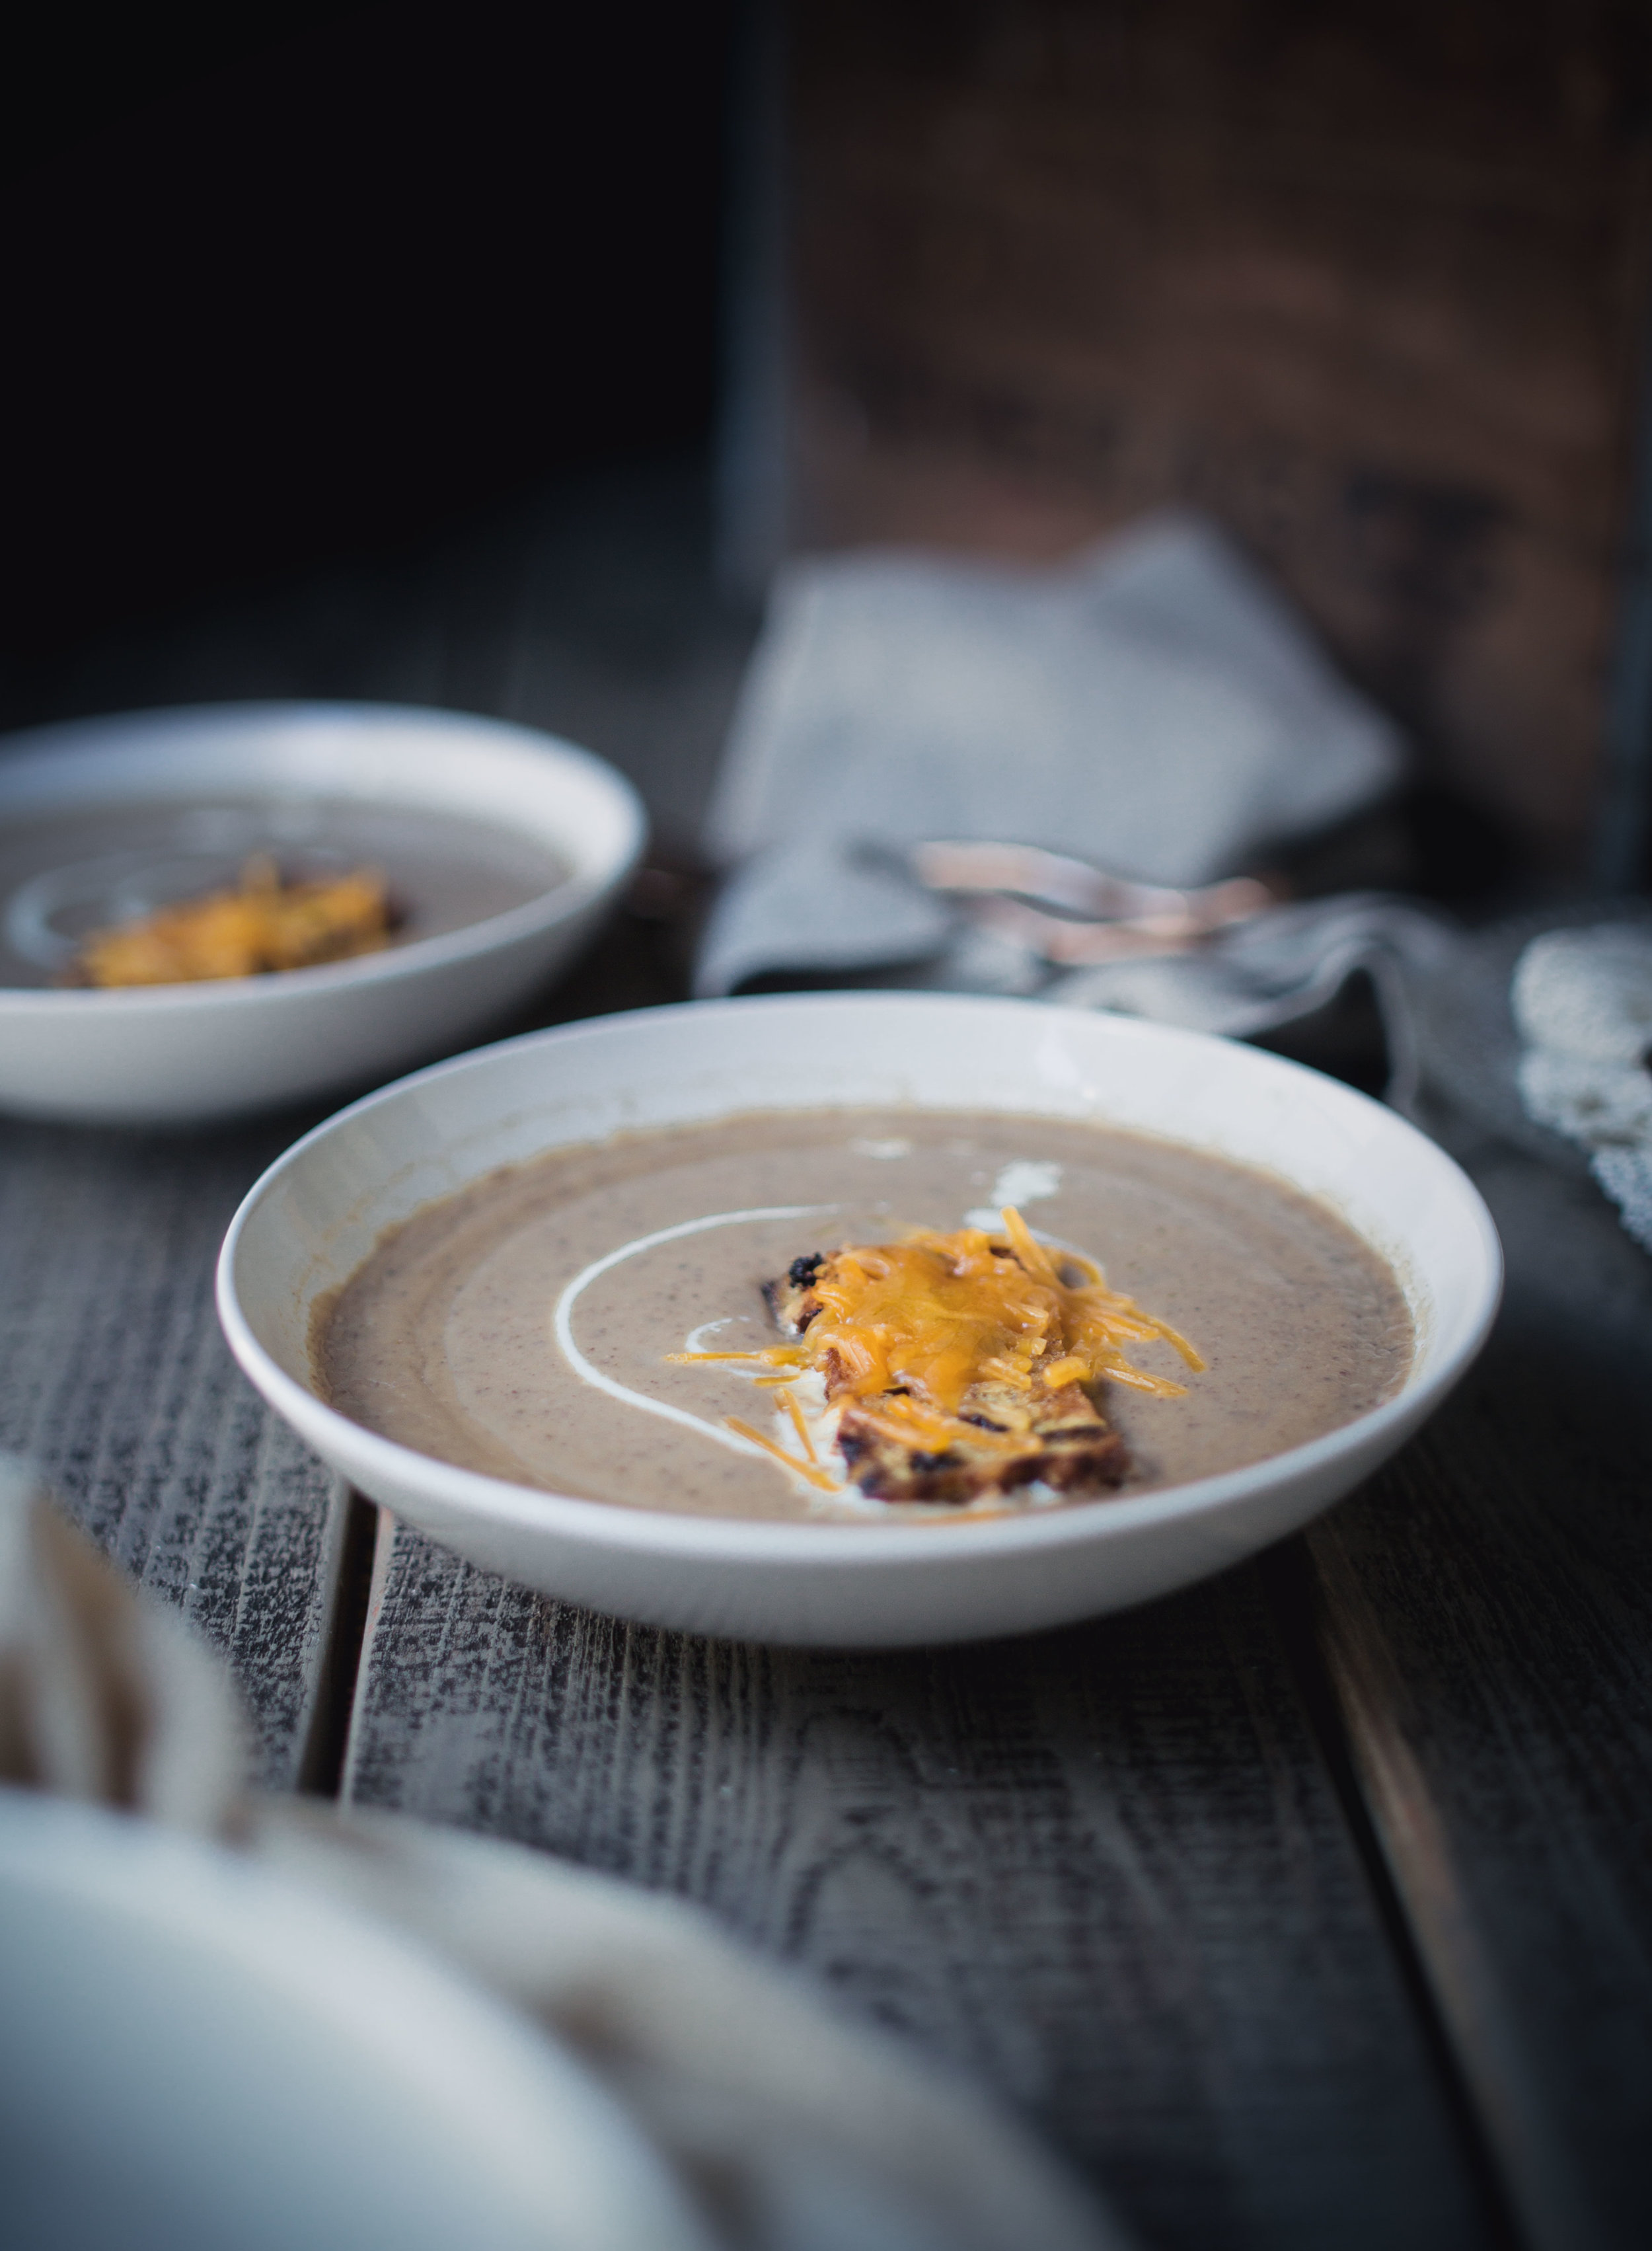 Creamy chestnut soup recipe--fall recipe ideas | from scratch, mostly